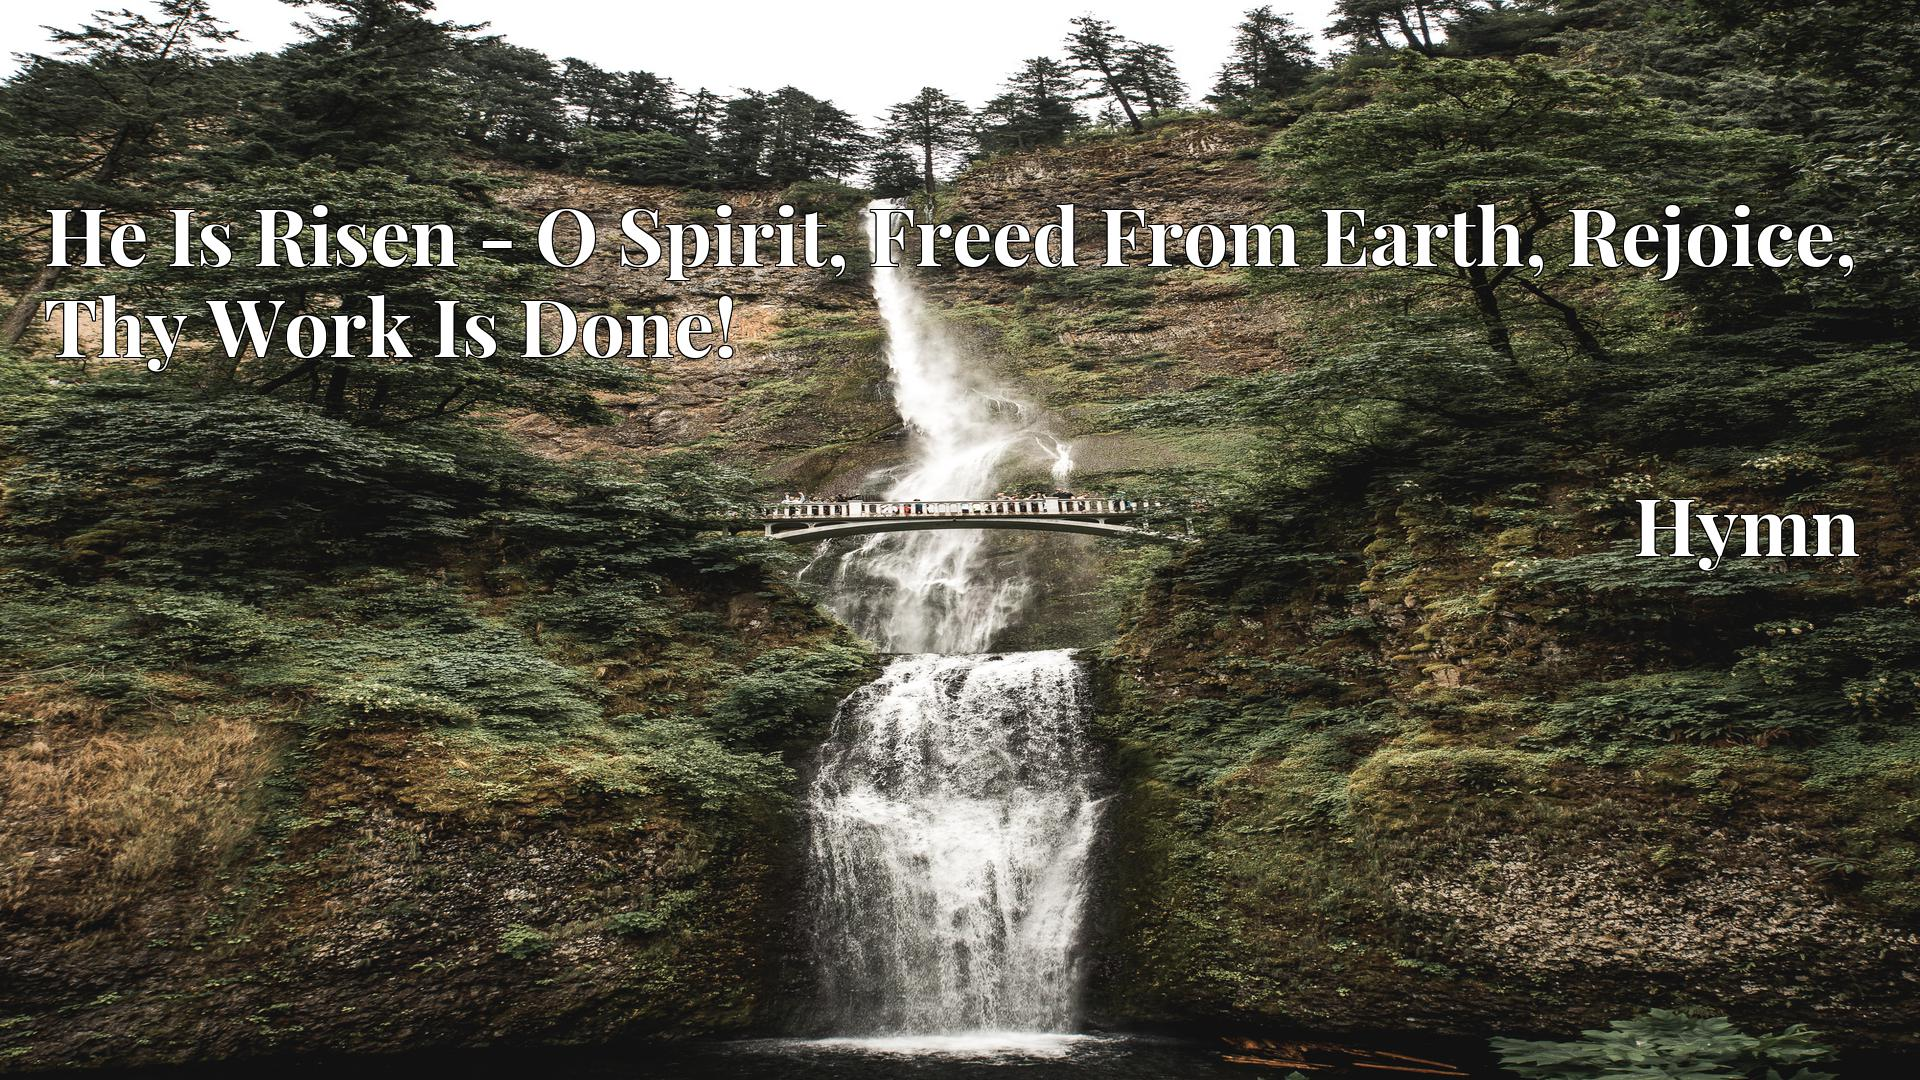 He Is Risen - O Spirit, Freed From Earth, Rejoice, Thy Work Is Done! - Hymn